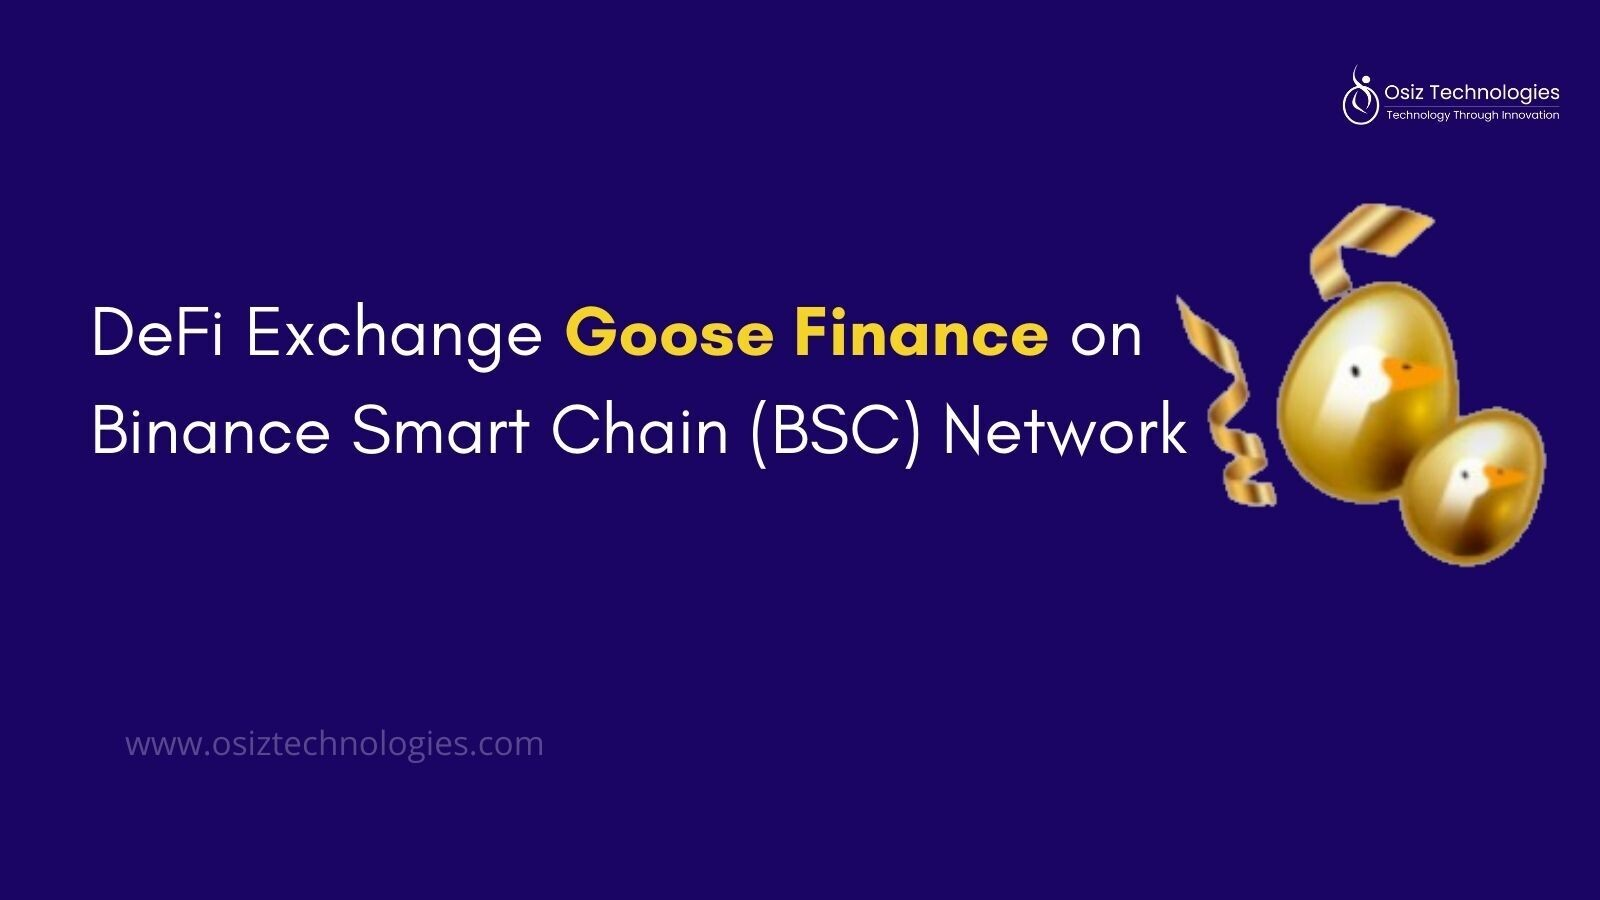 What is So Special in Goose Finance DeFi Exchange?